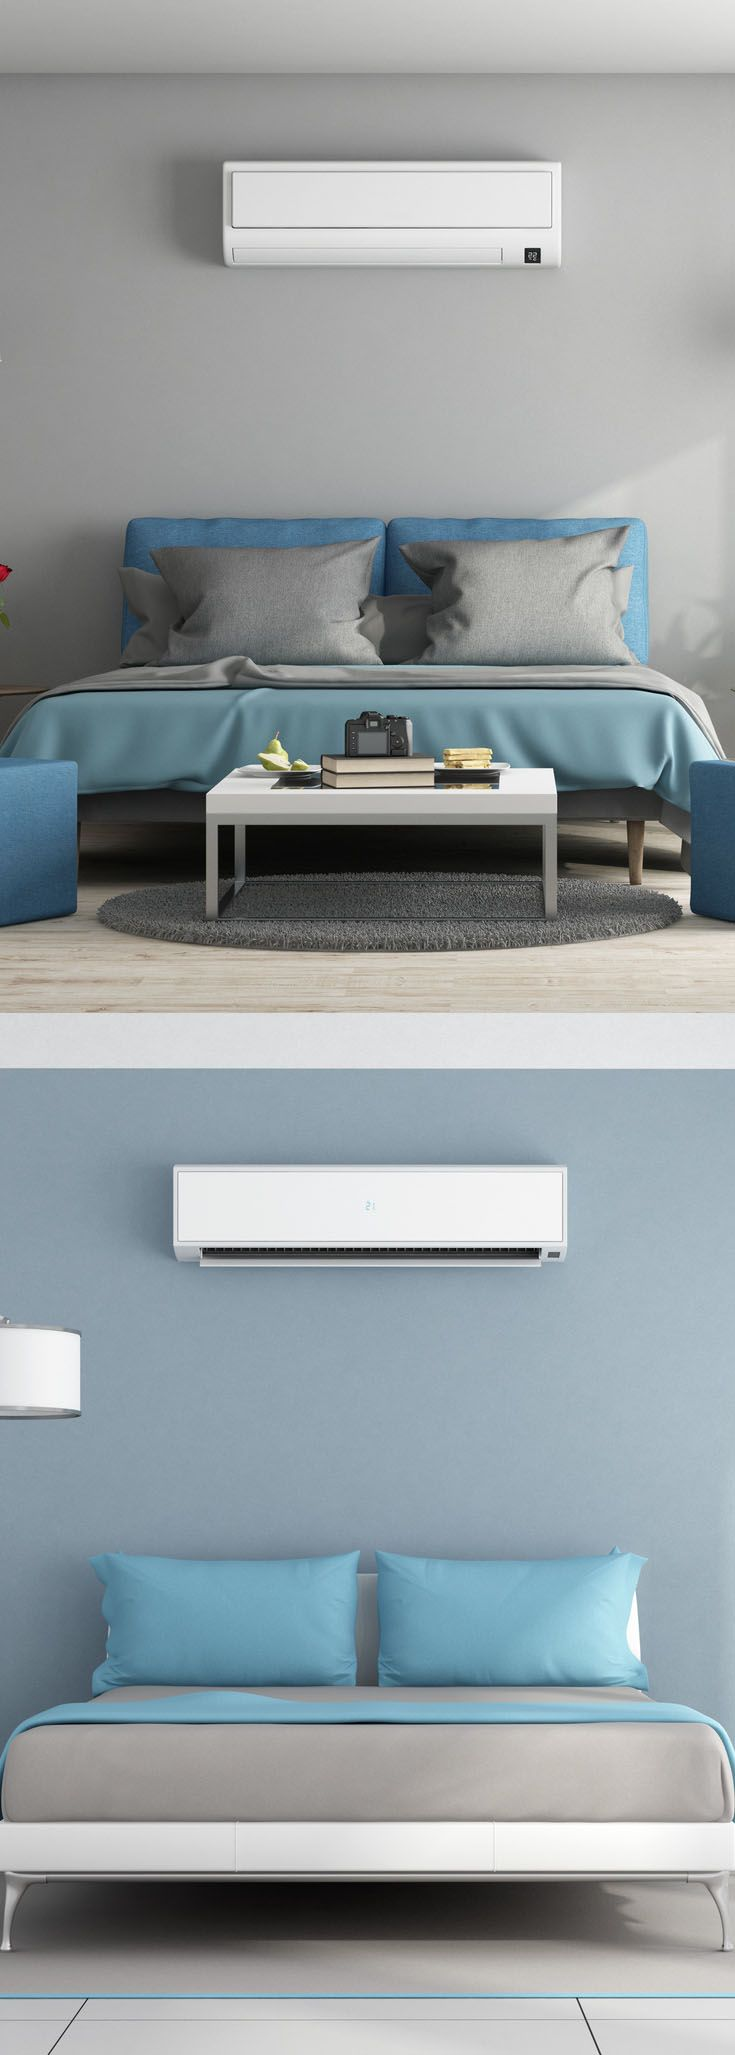 You can select an air conditioner according to the size of your room. Window Air conditioners are available in different prices with various features that are best to beat the heat. In this review, you will get to know about the Top 10 Best Window Air Conditioner.